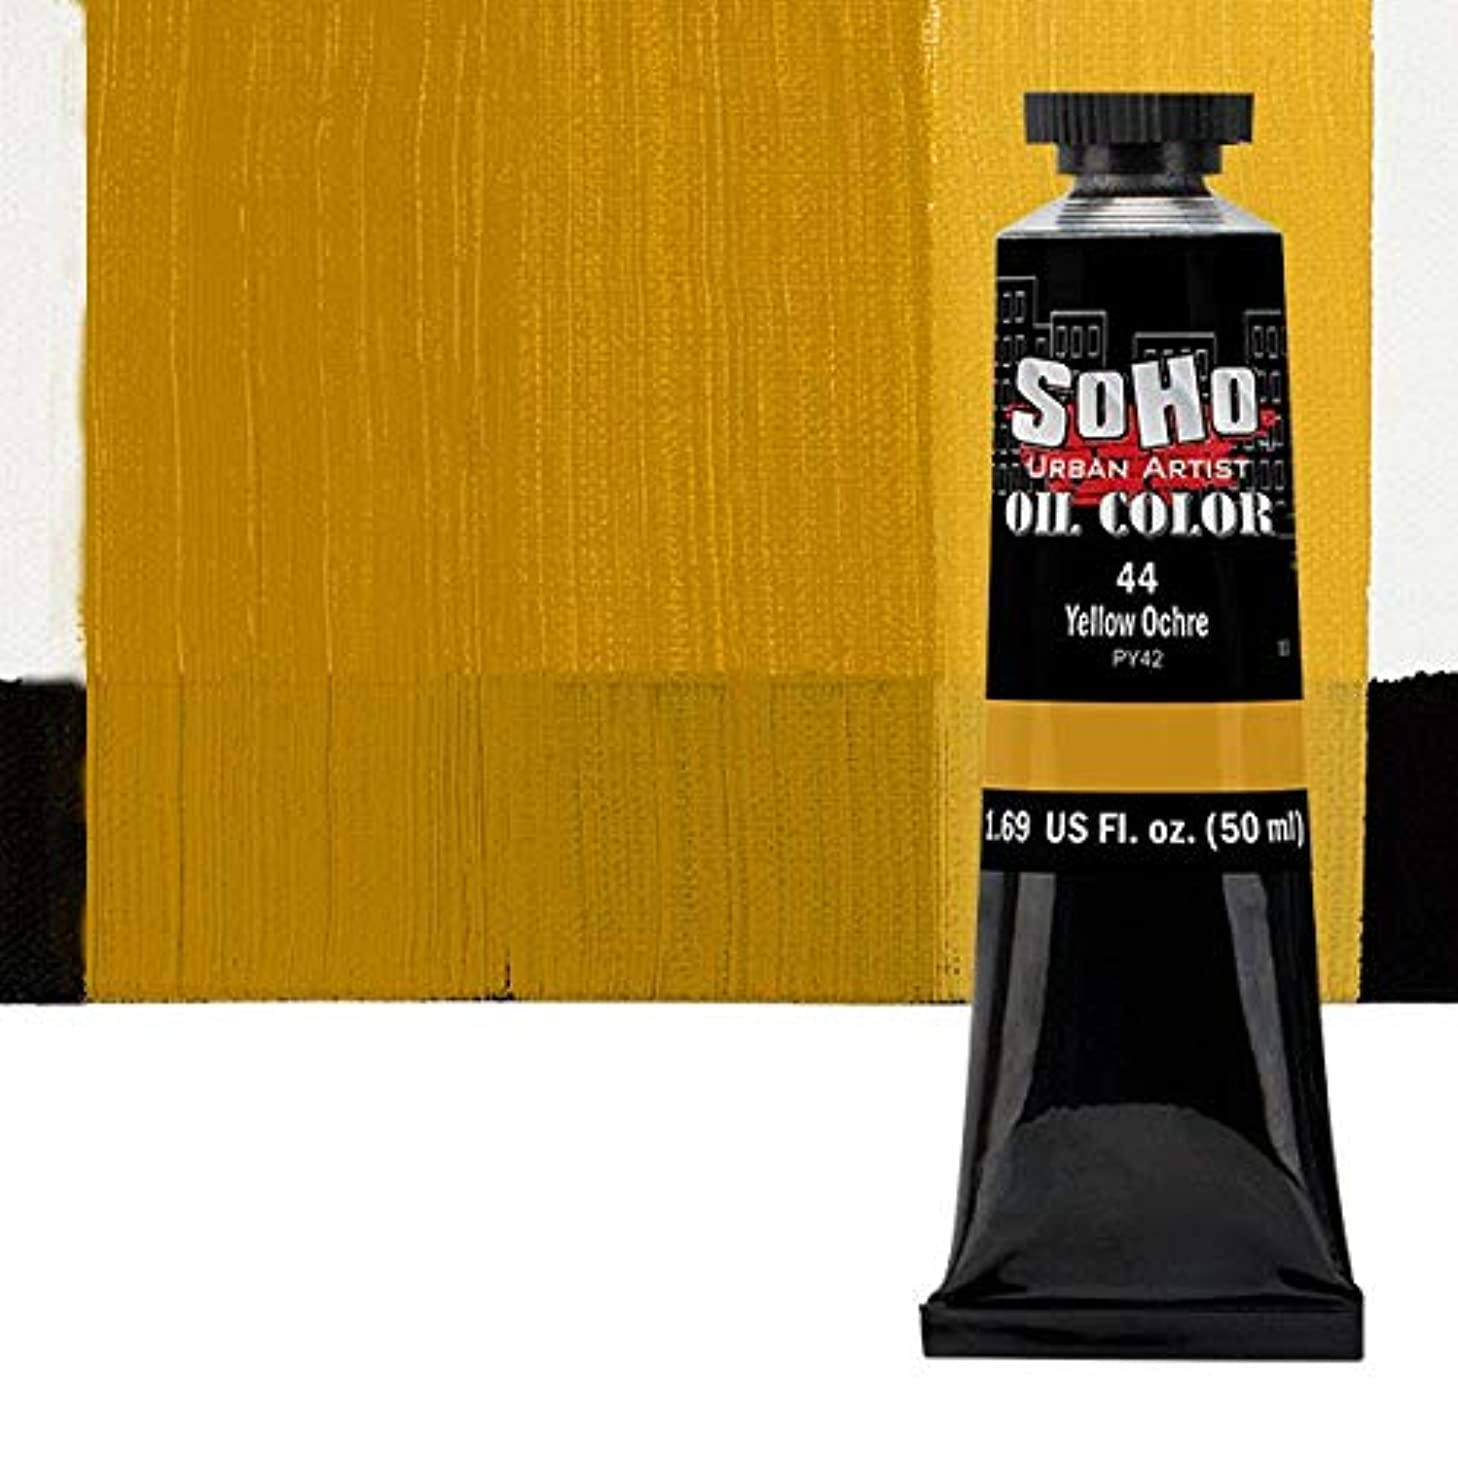 SoHo Urban Artist Oil Color Paint and High Pigmented Professional Oil Paint - 50 ml Tube - Yellow Ochre